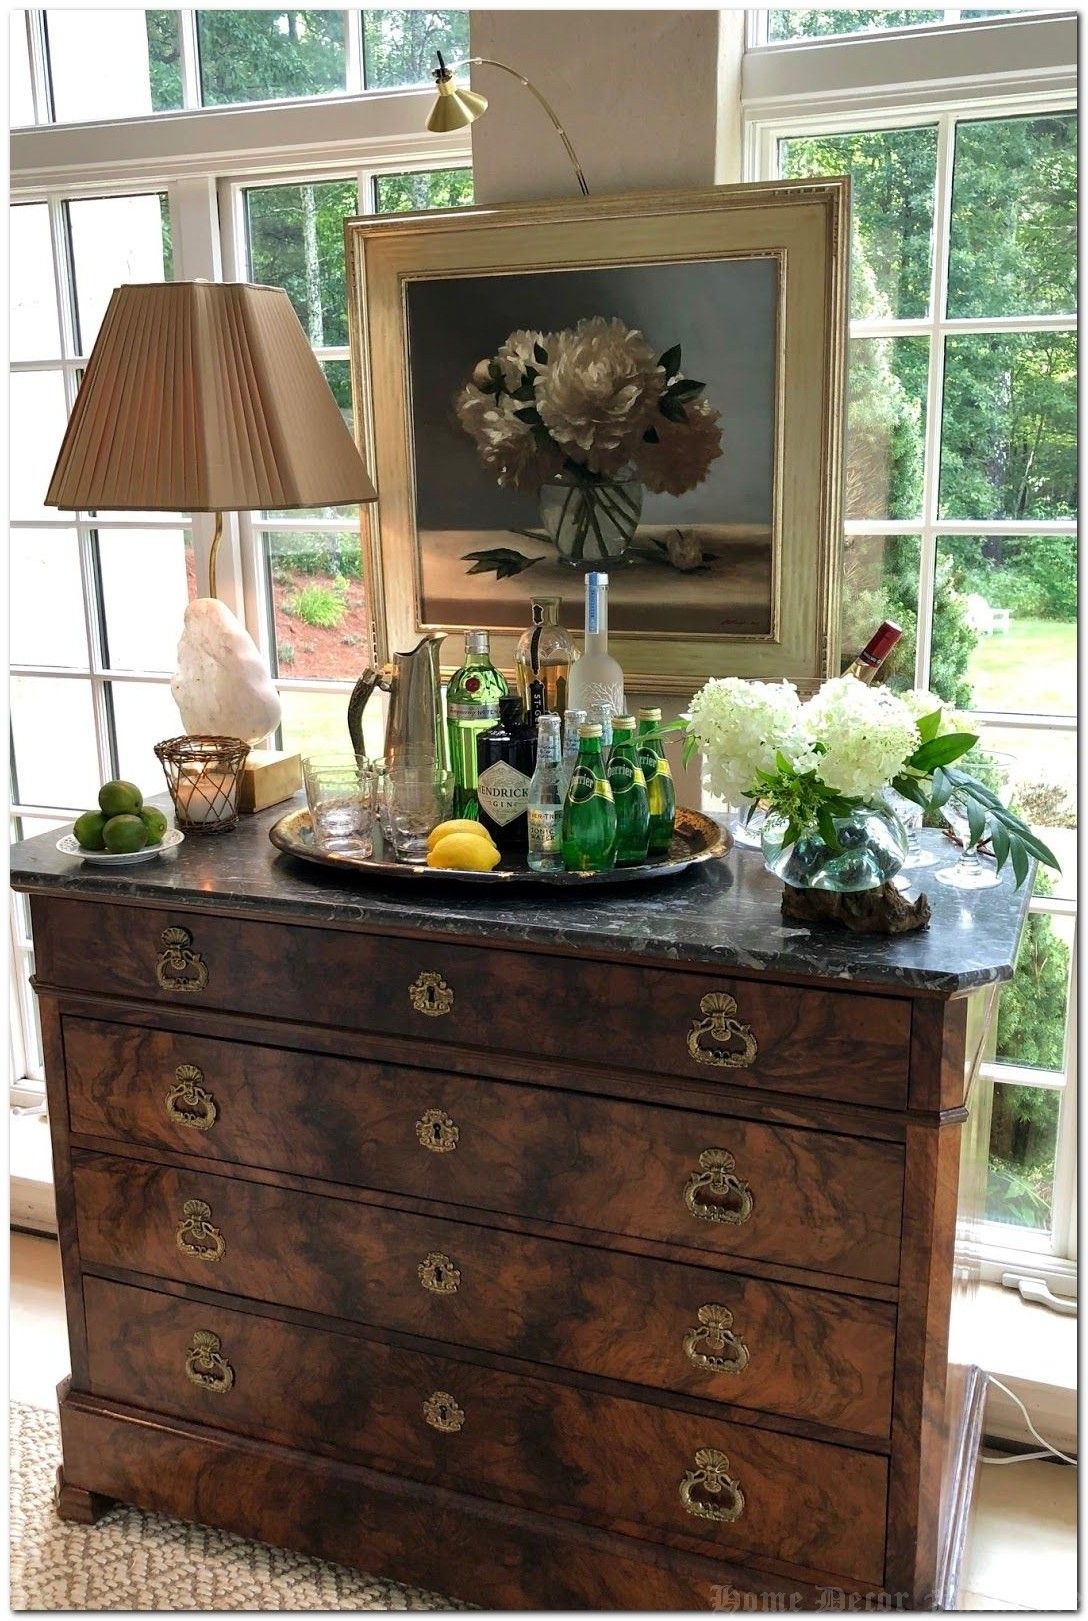 The Home Decor Furniture Mystery